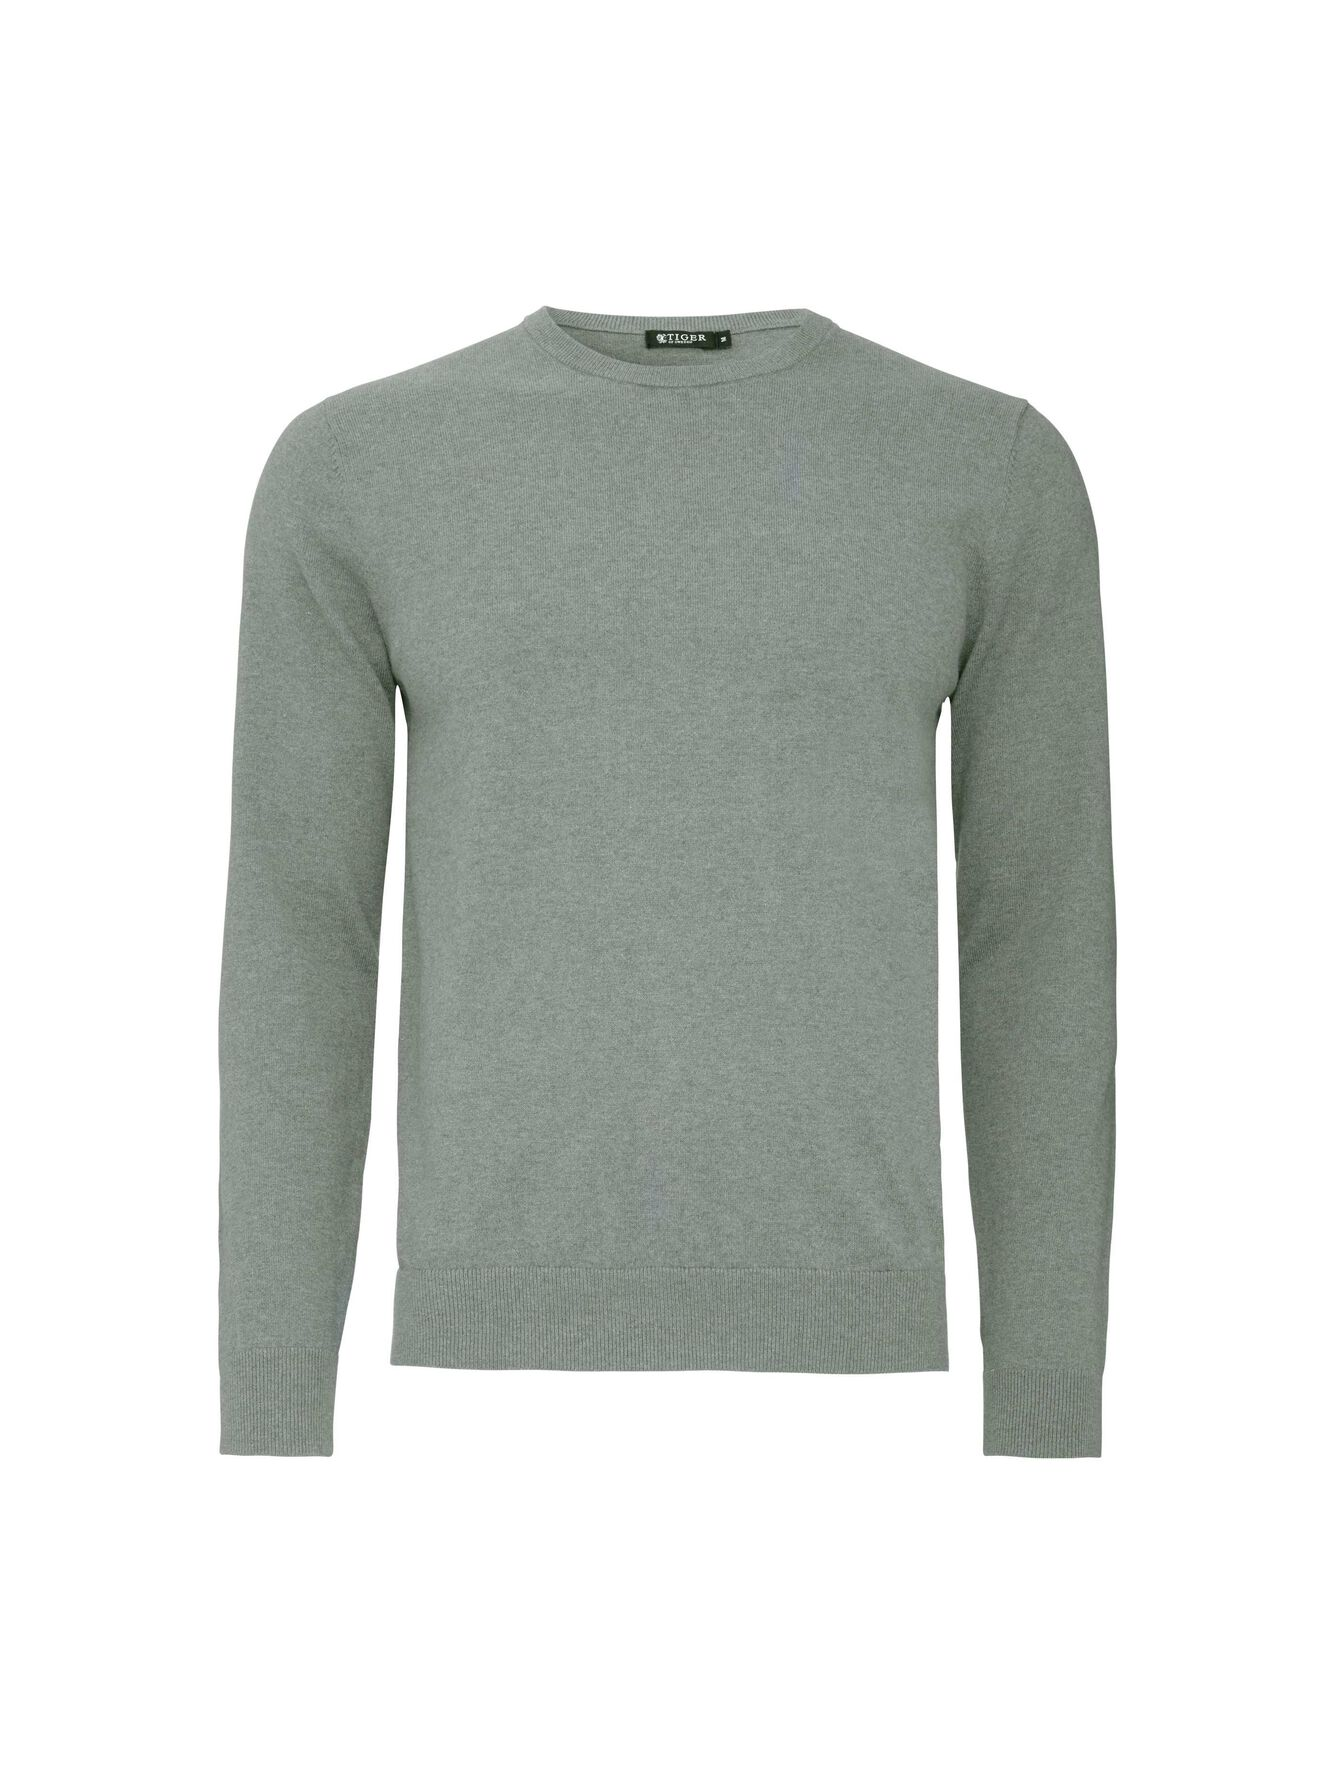 Matias CS pullover in Evergreen from Tiger of Sweden